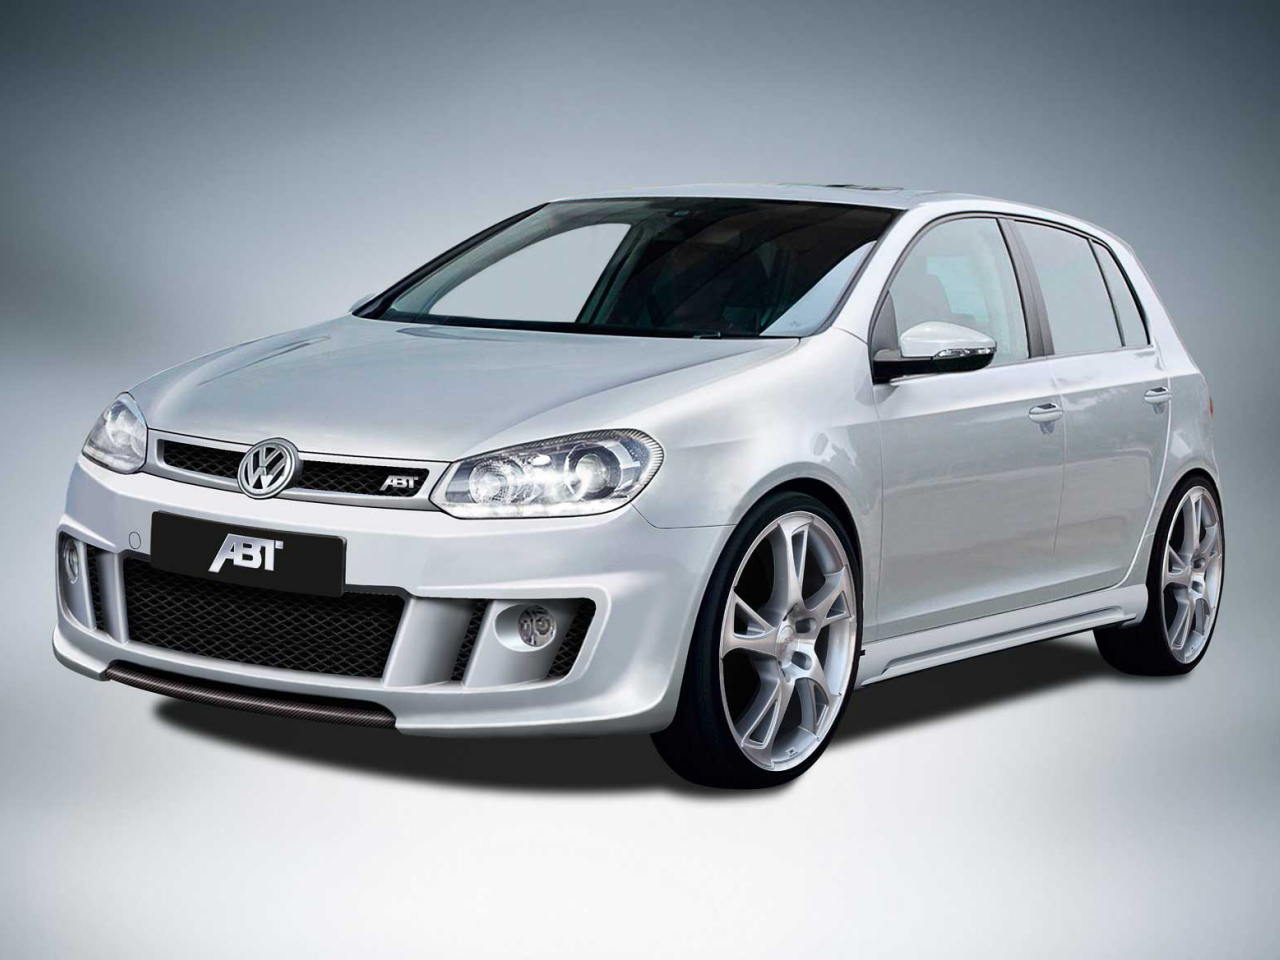 New VW Golf by Abt Sportsline